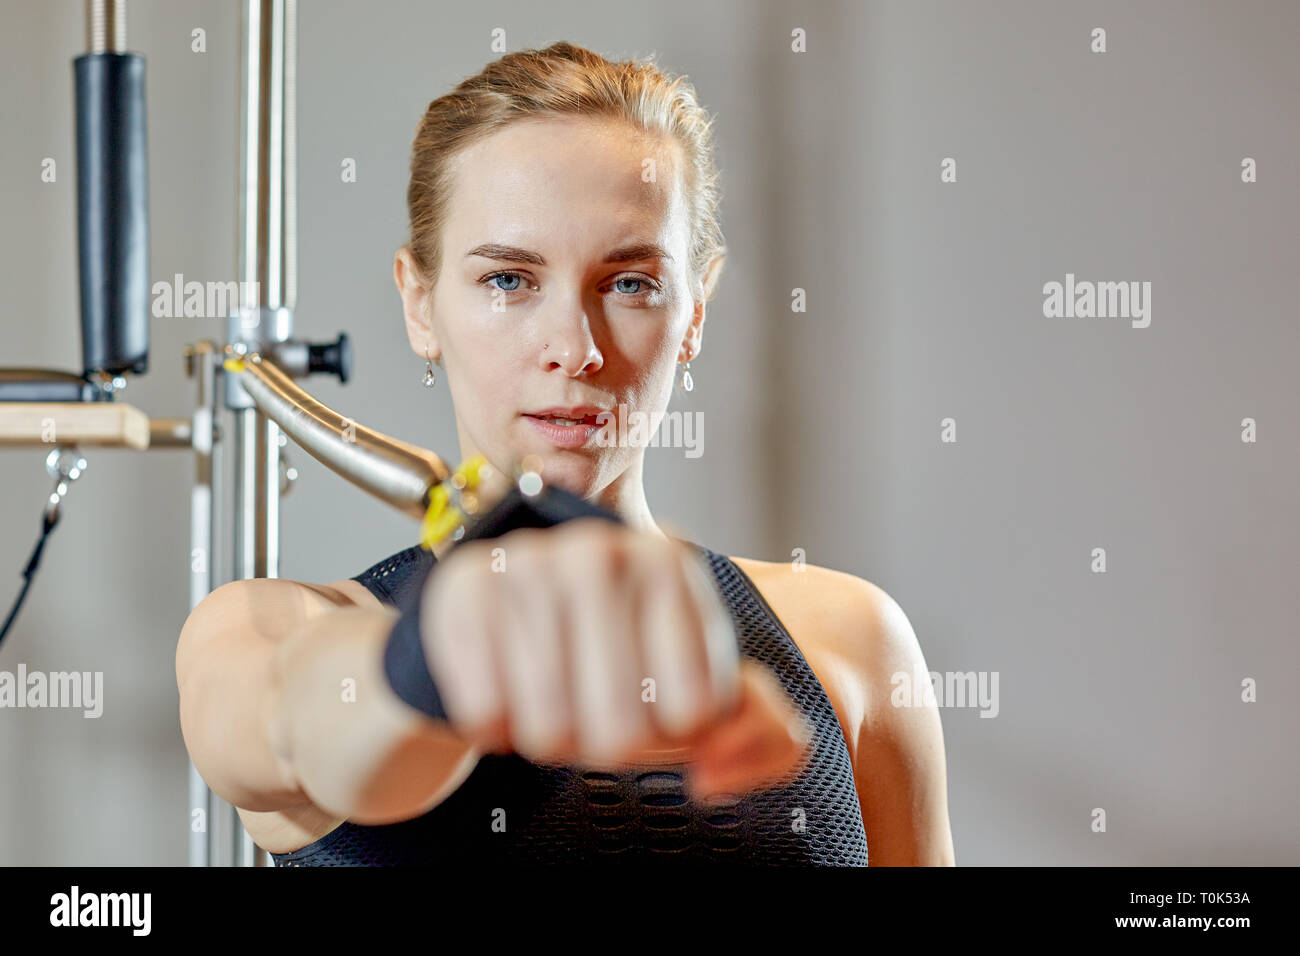 gym woman pilates stretching sport in reformer bed instructor girl. Healthy Smiling Woman Wearing Leotard Practicing Pilates. Selective focus - Stock Image